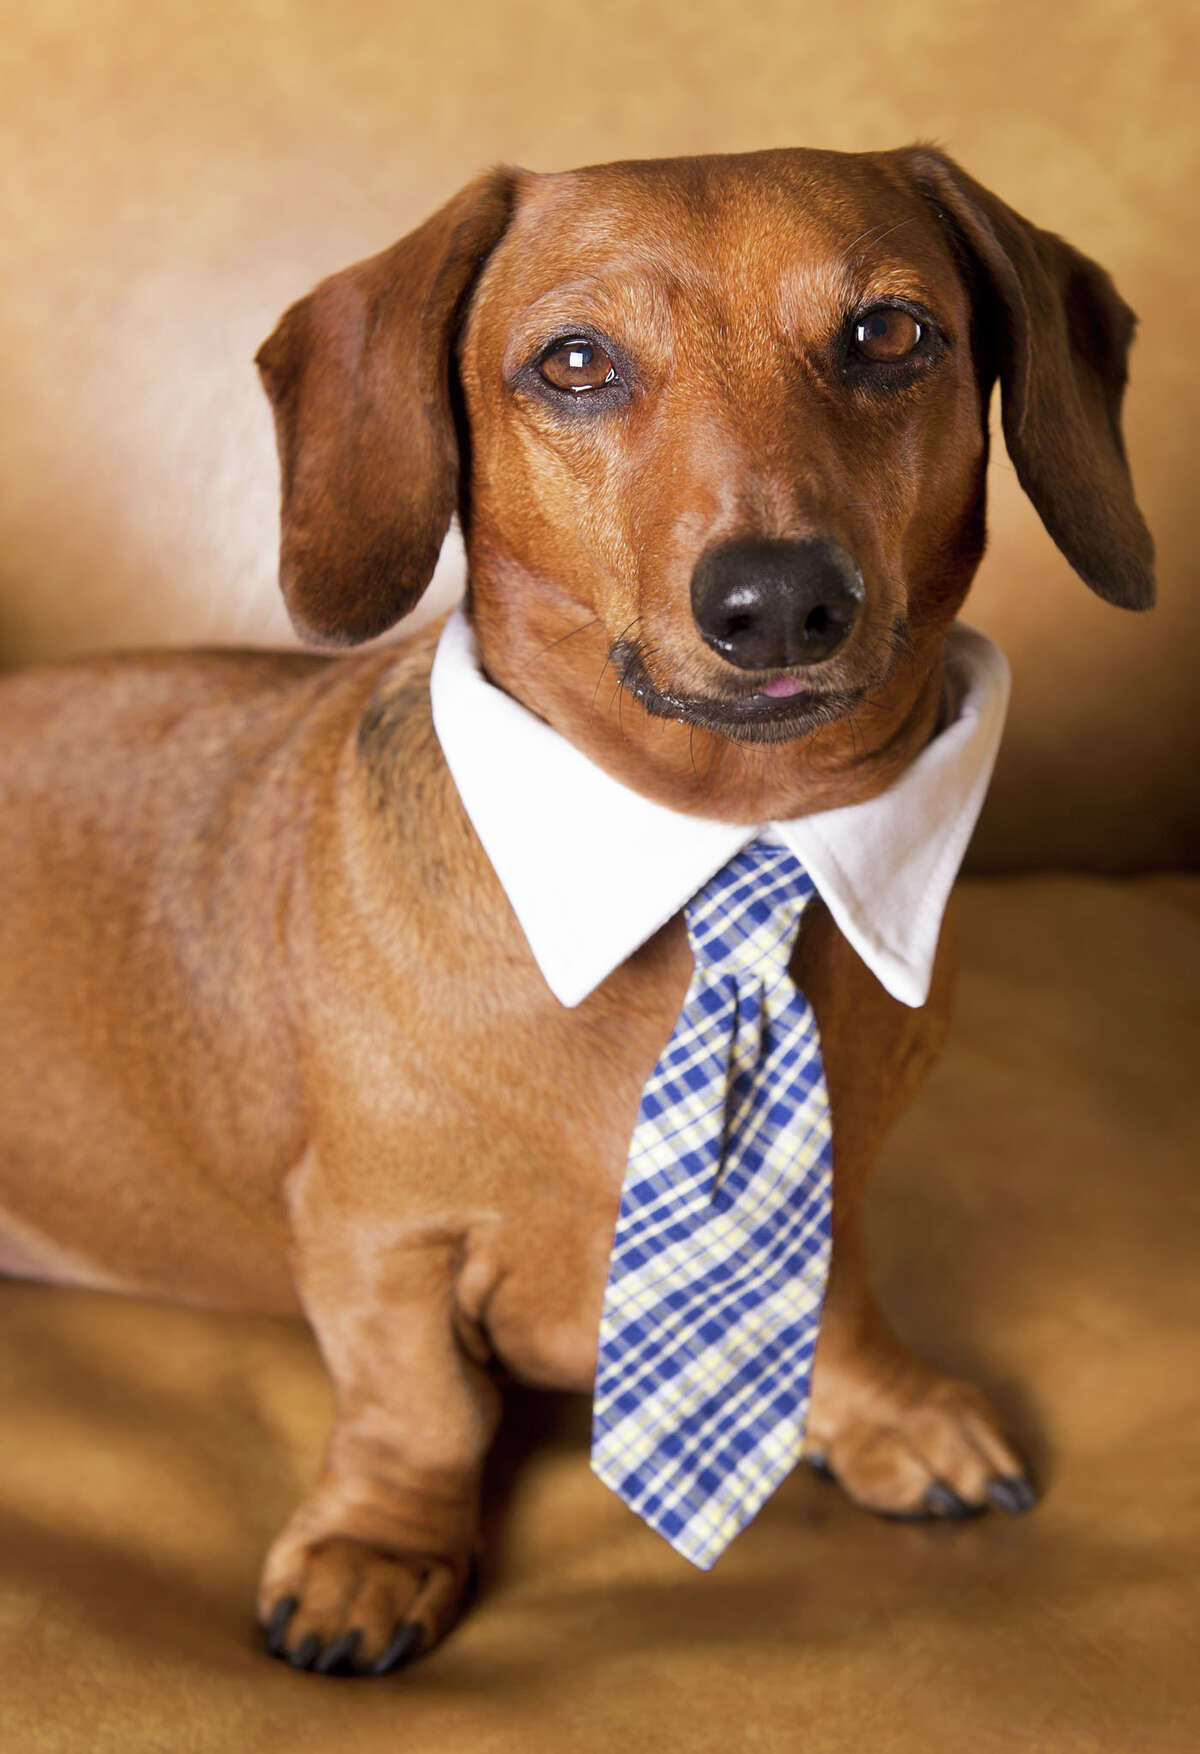 This dachshund, who is going to have to talk to the folks at corporate before he can approve any additional overtime for Q3.